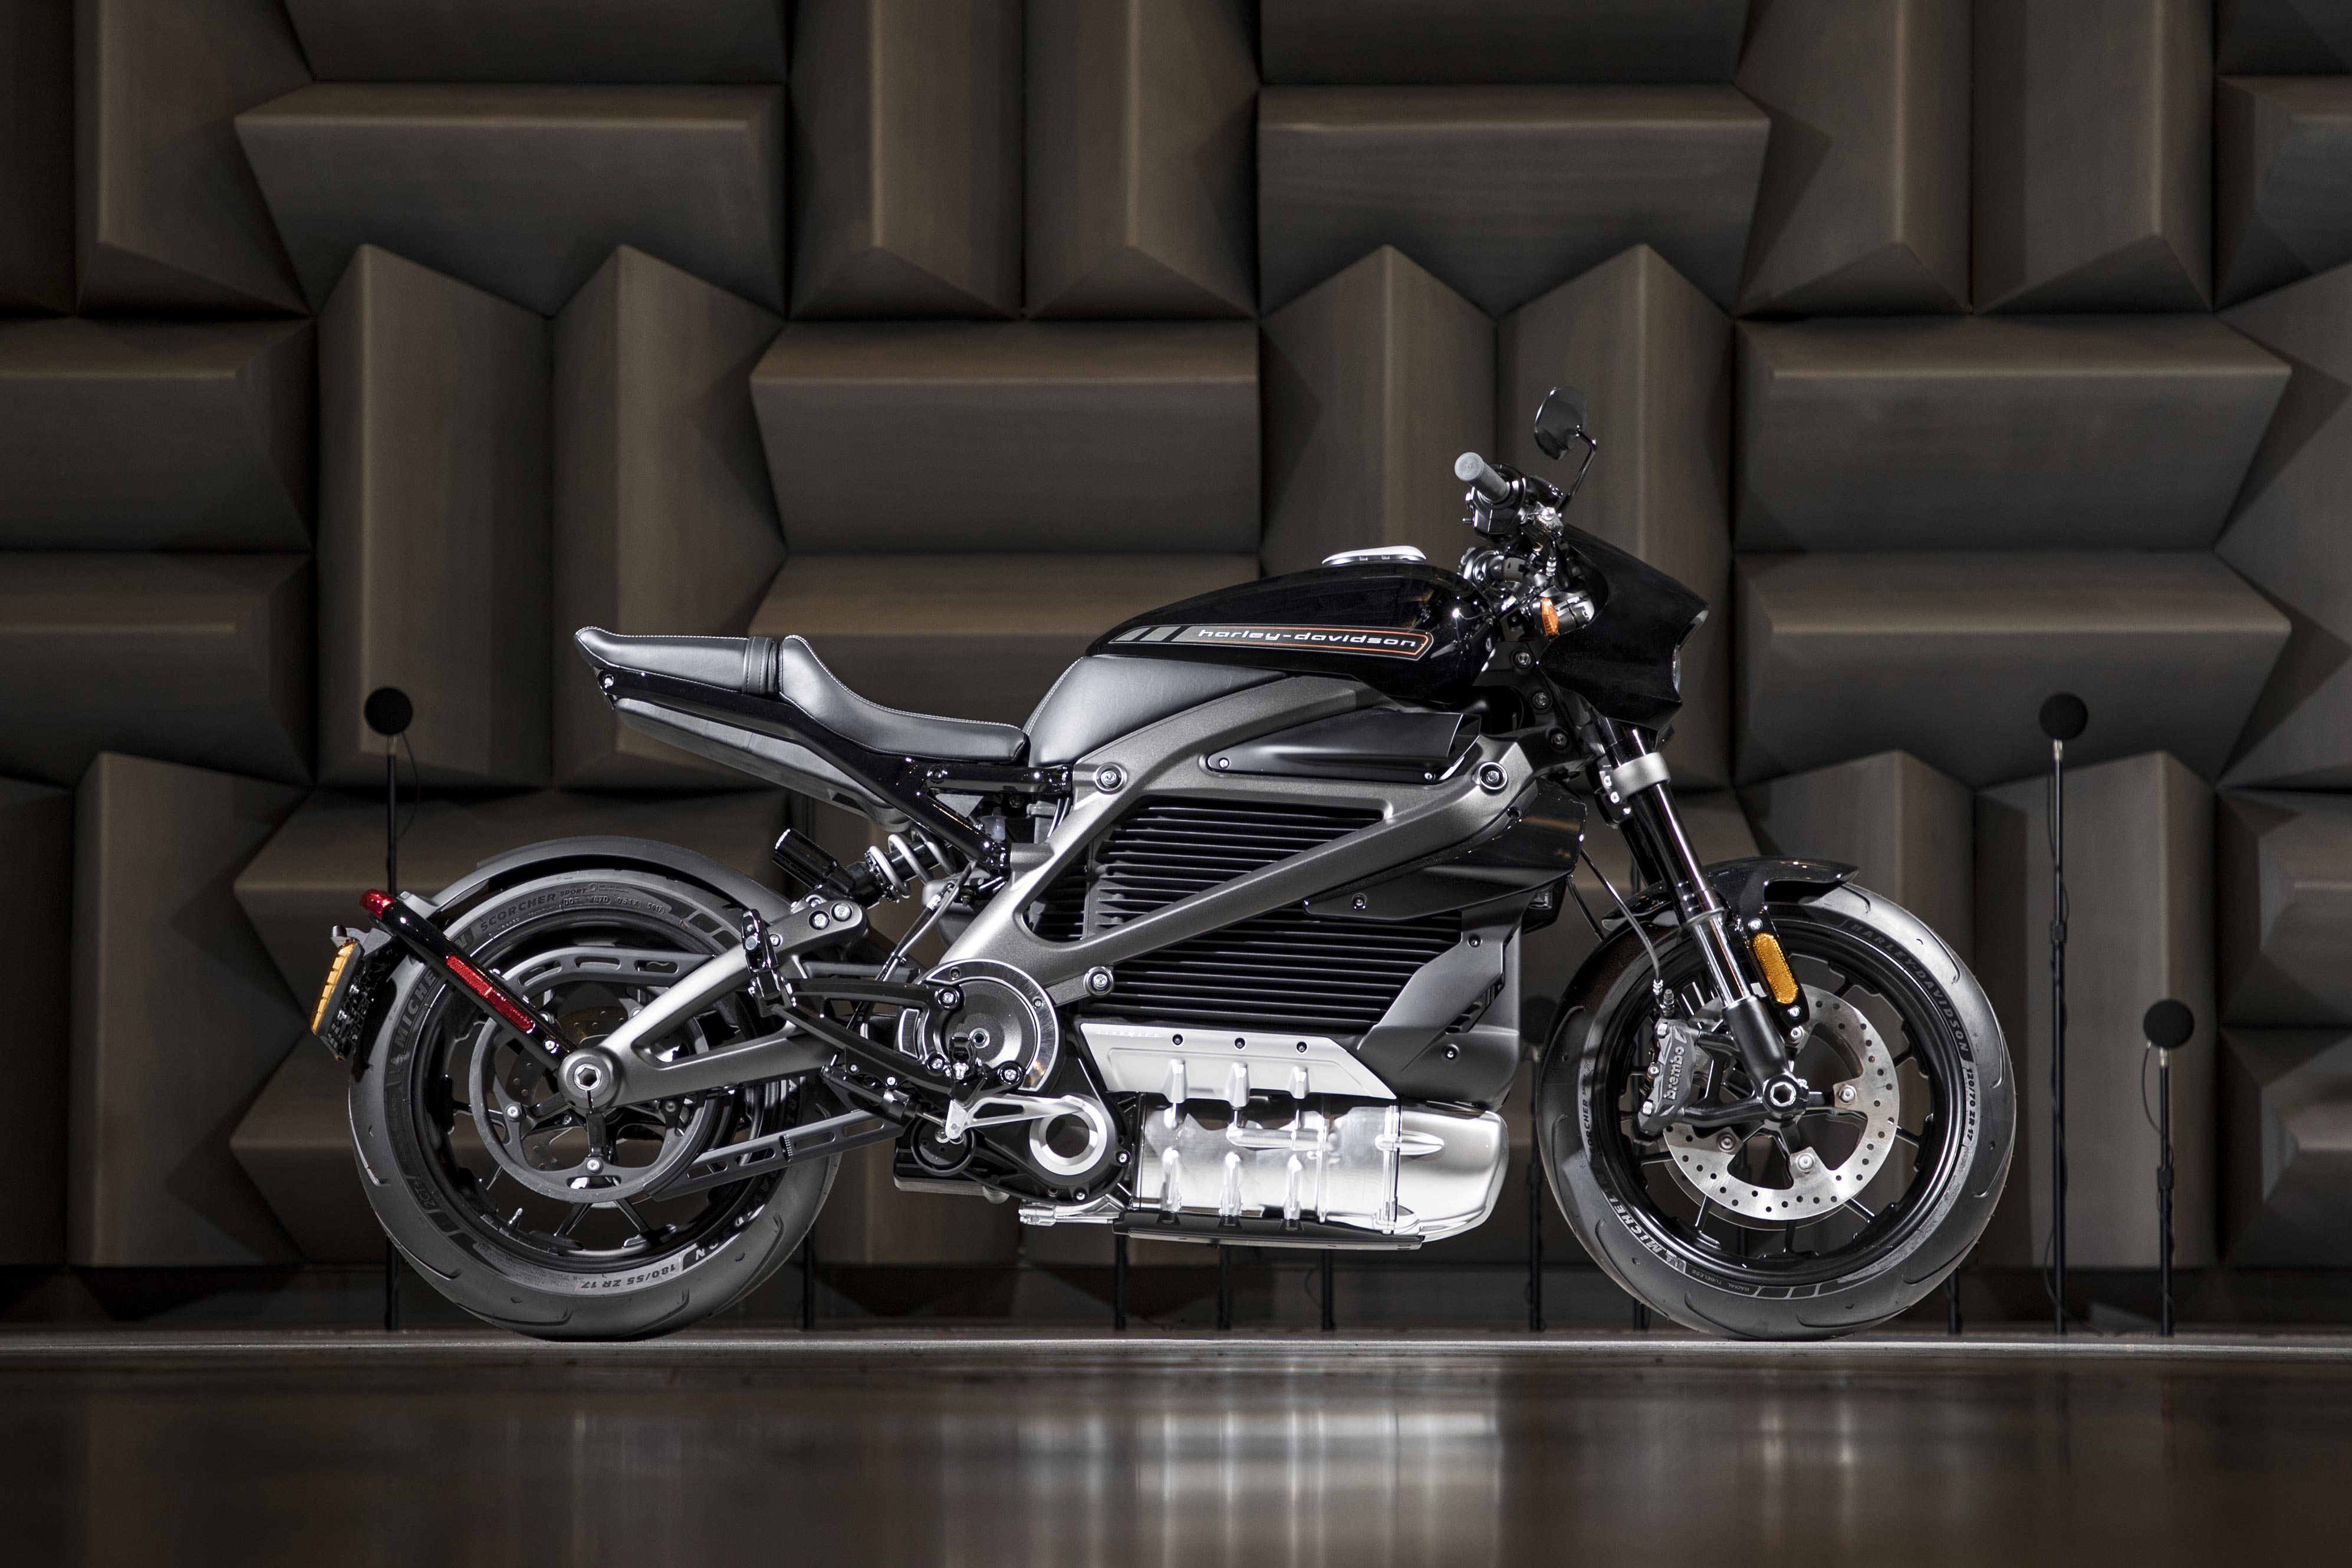 https://www.harley-davidson.com/us/en/motorcycles/future-vehicles/livewire.html